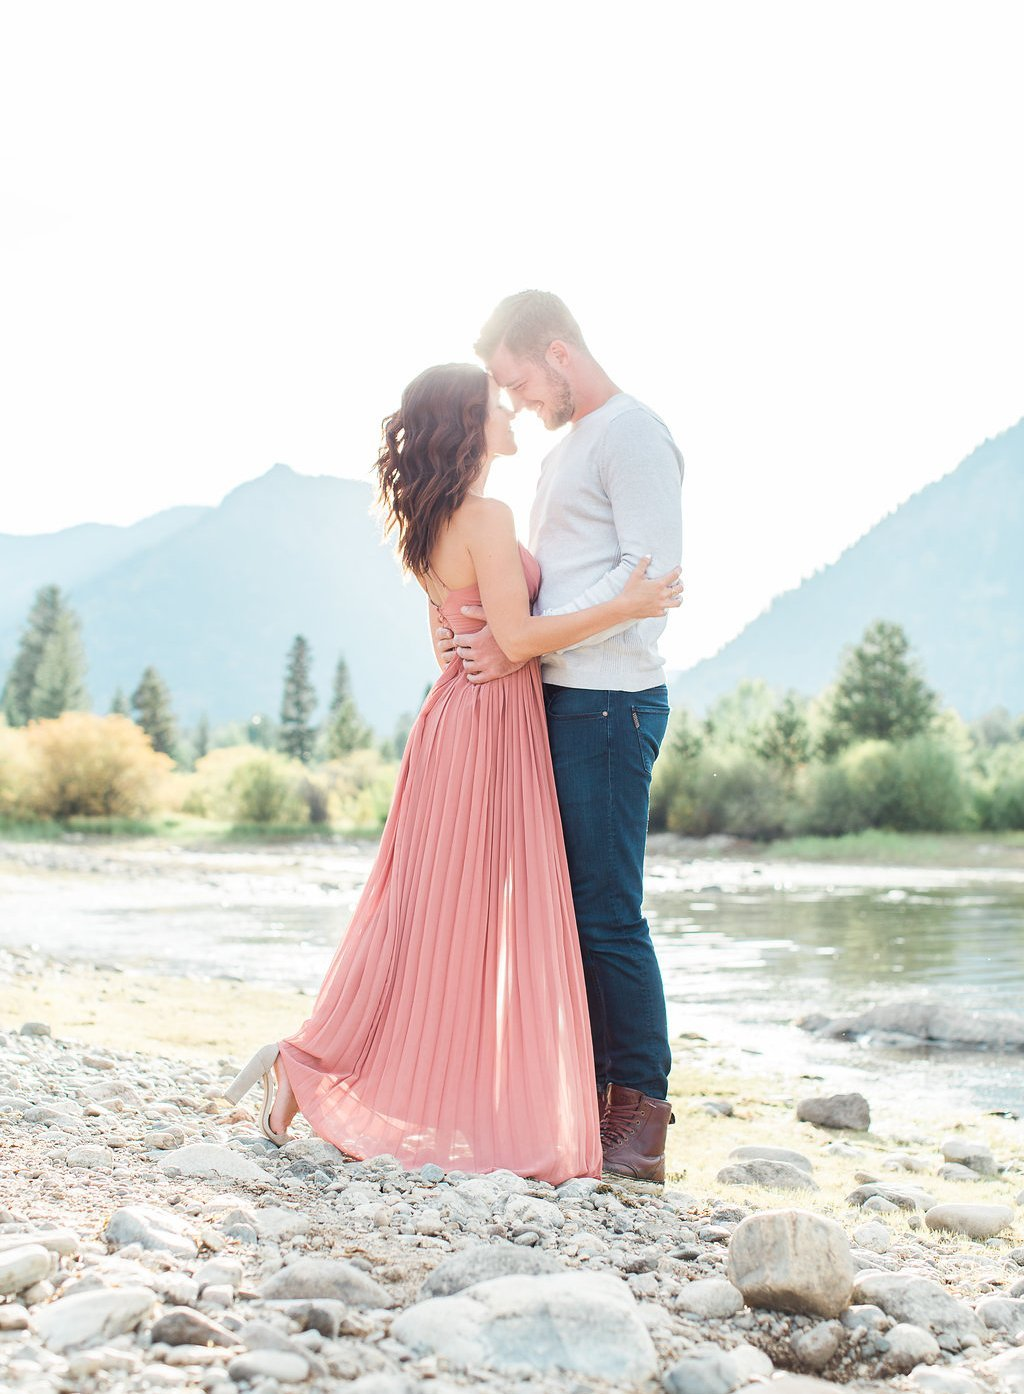 Bride wearing pink and groom near the lake embracing